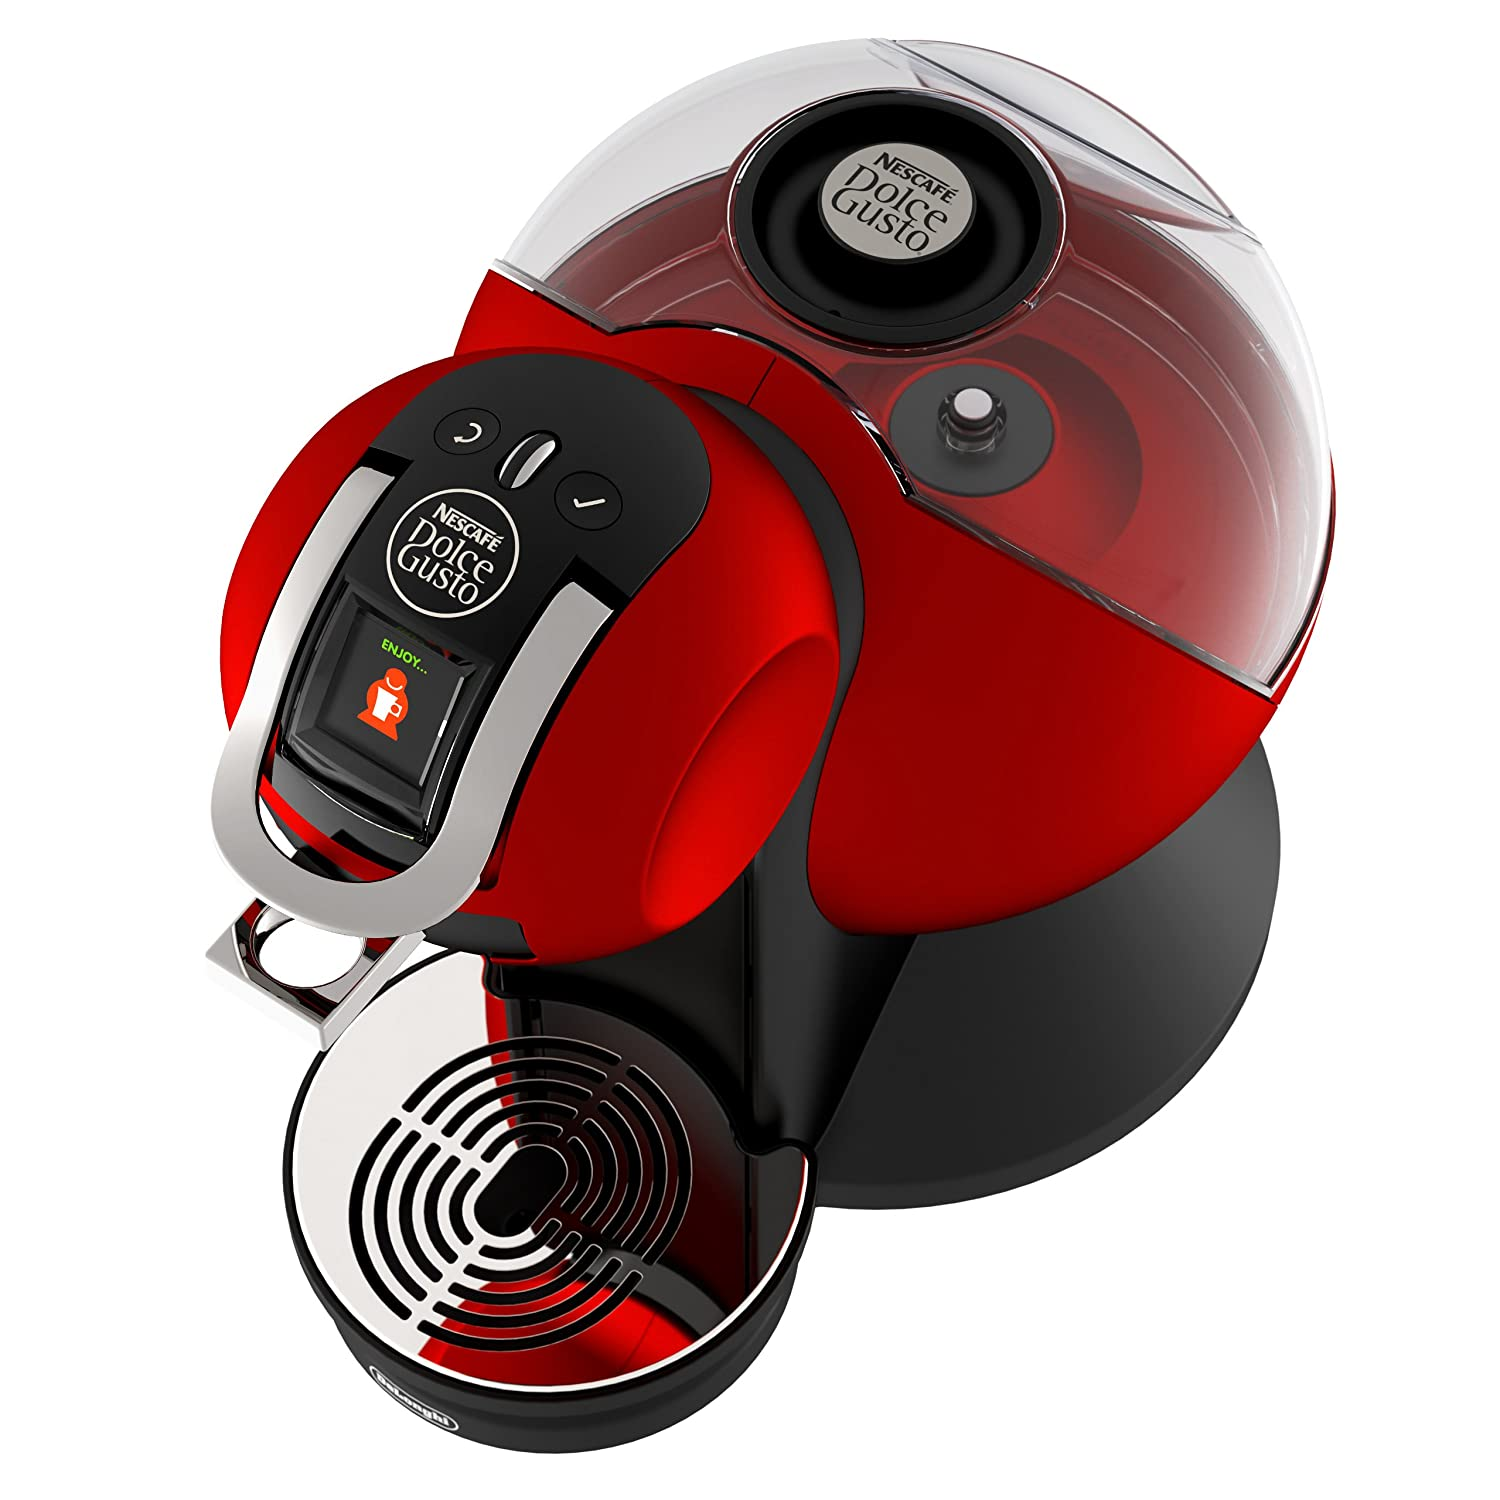 Amazon.com: DeLonghi Nescafe Dolce Gusto Creativa Plus ...